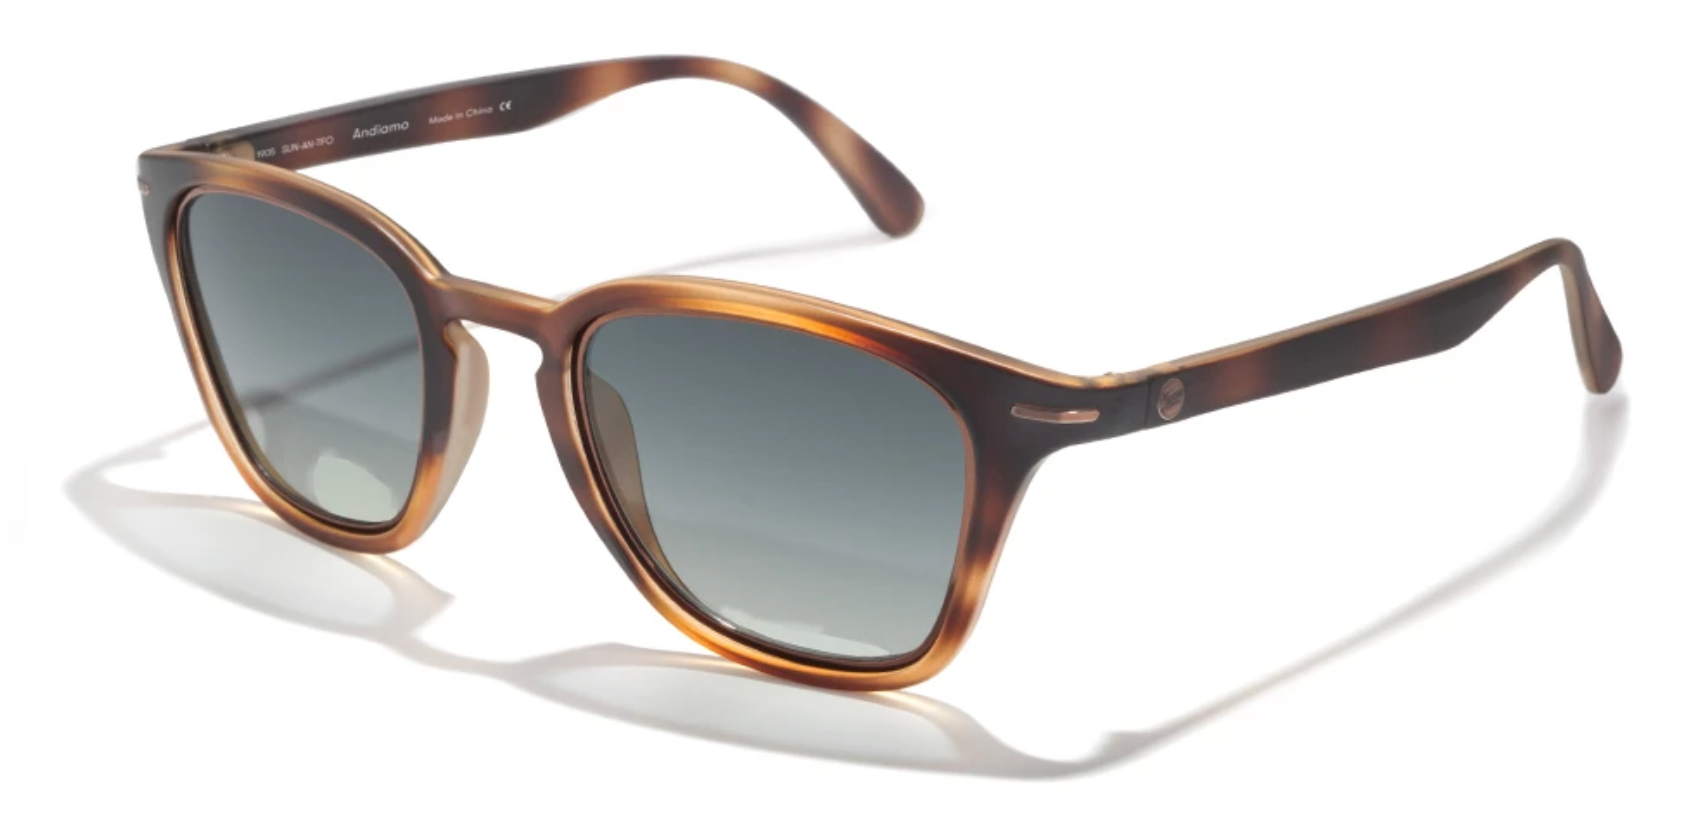 Polarized sunglasses made from recycled resin in a tortoise shell colored frame.